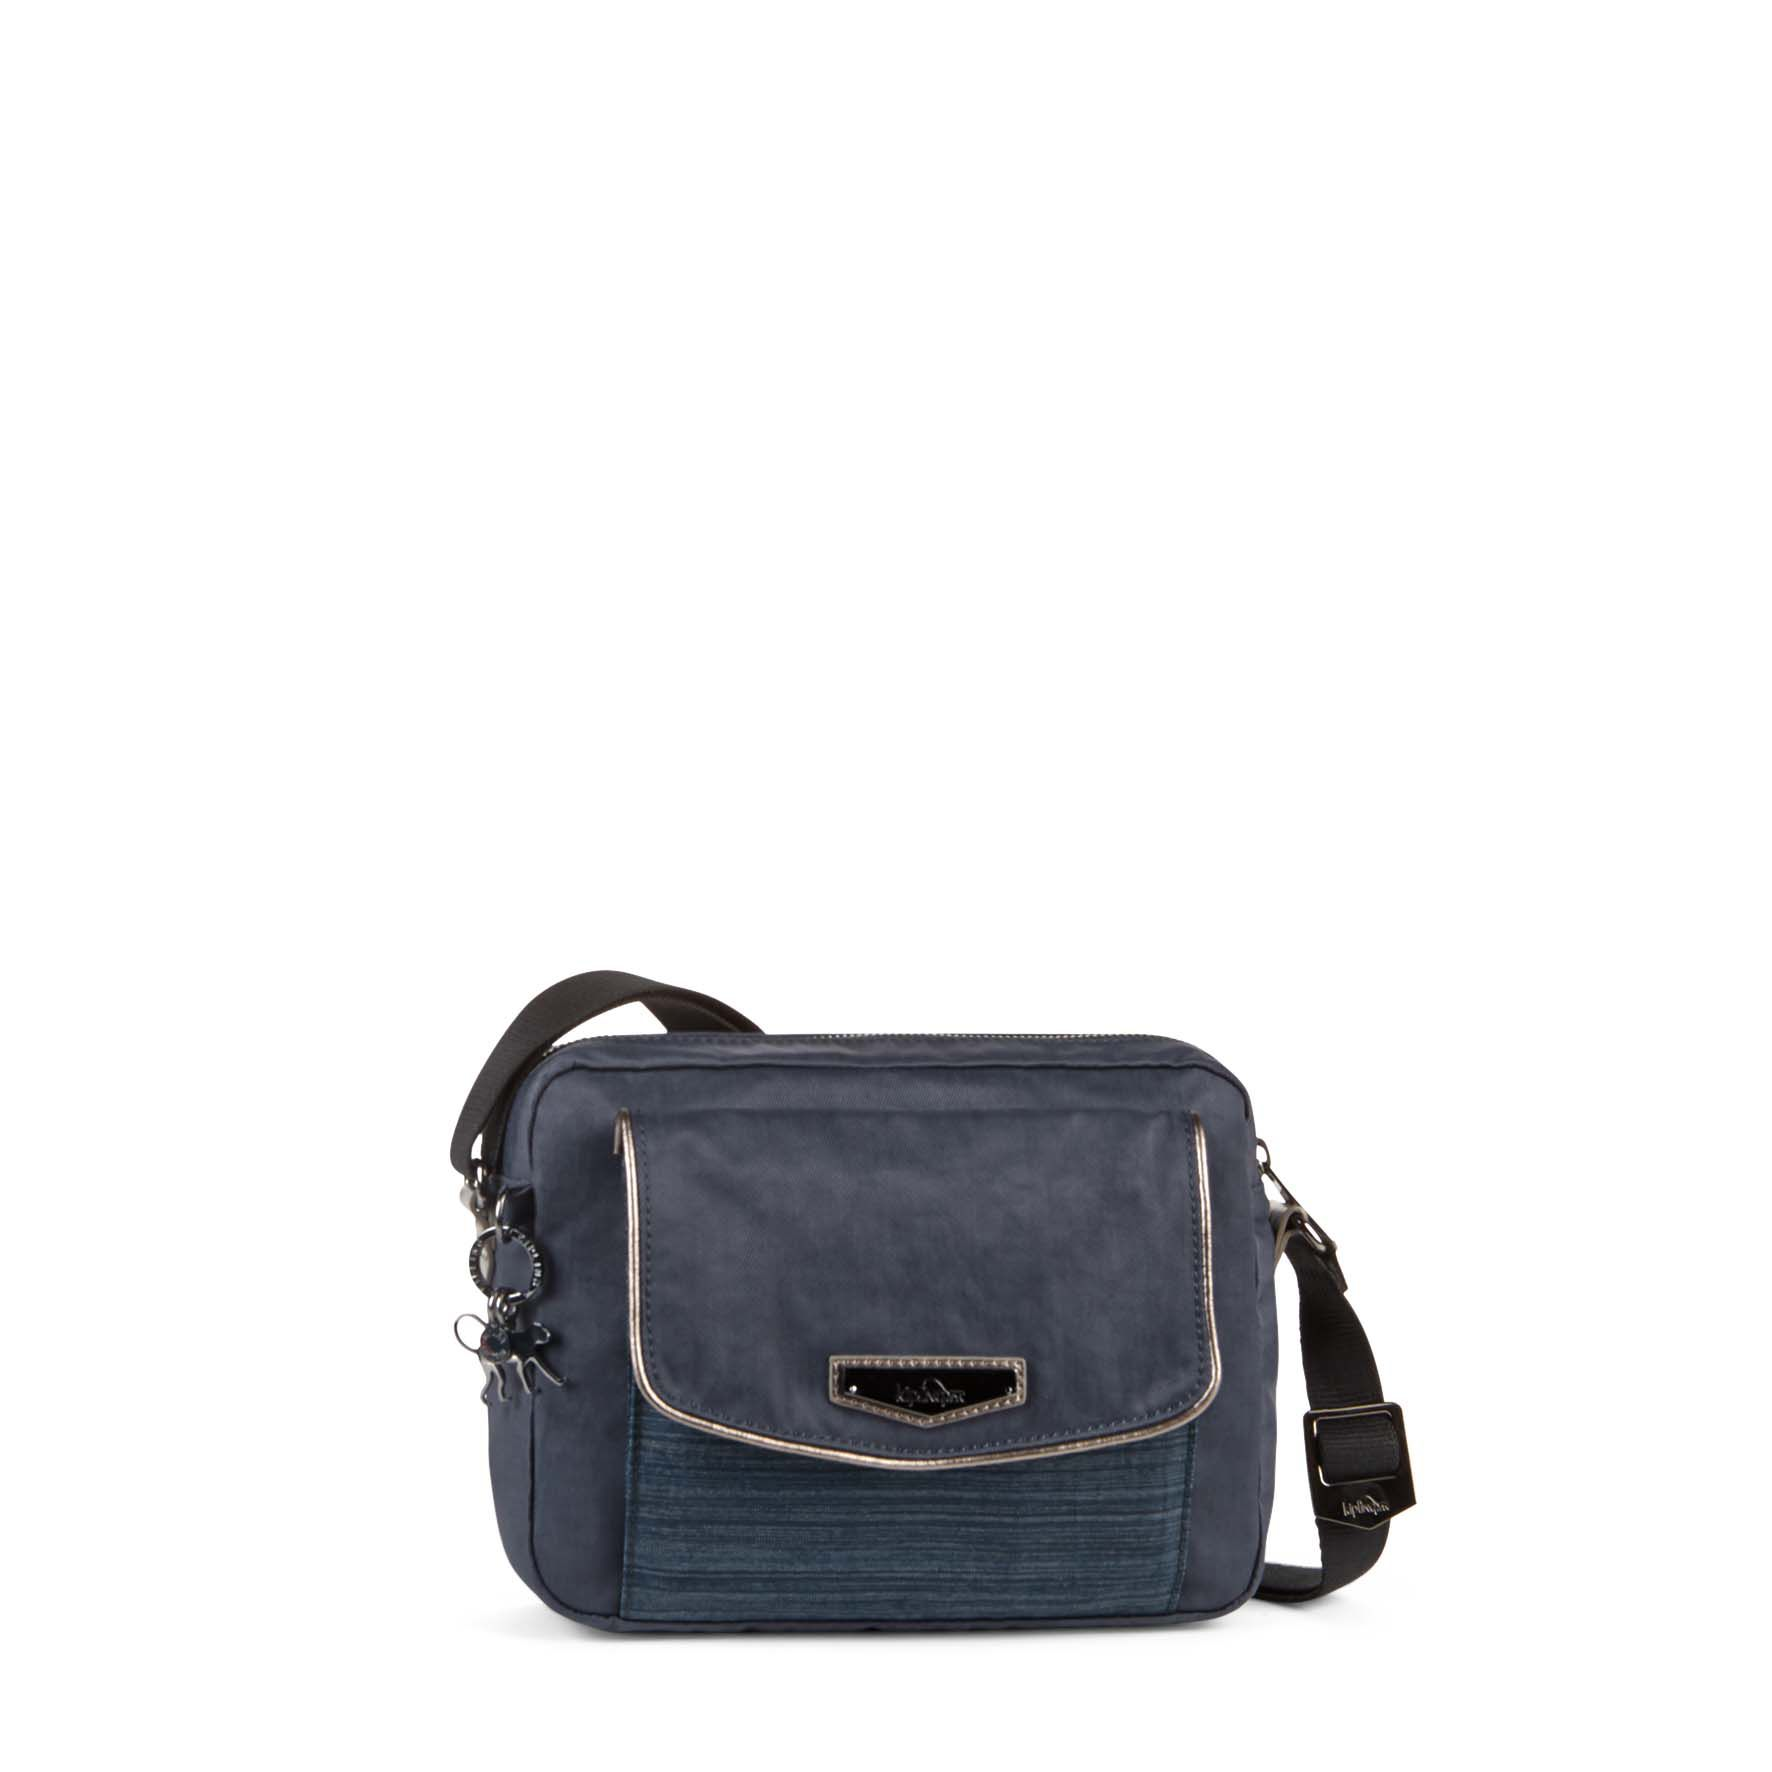 Kipling Merissa shoulder bag Blue